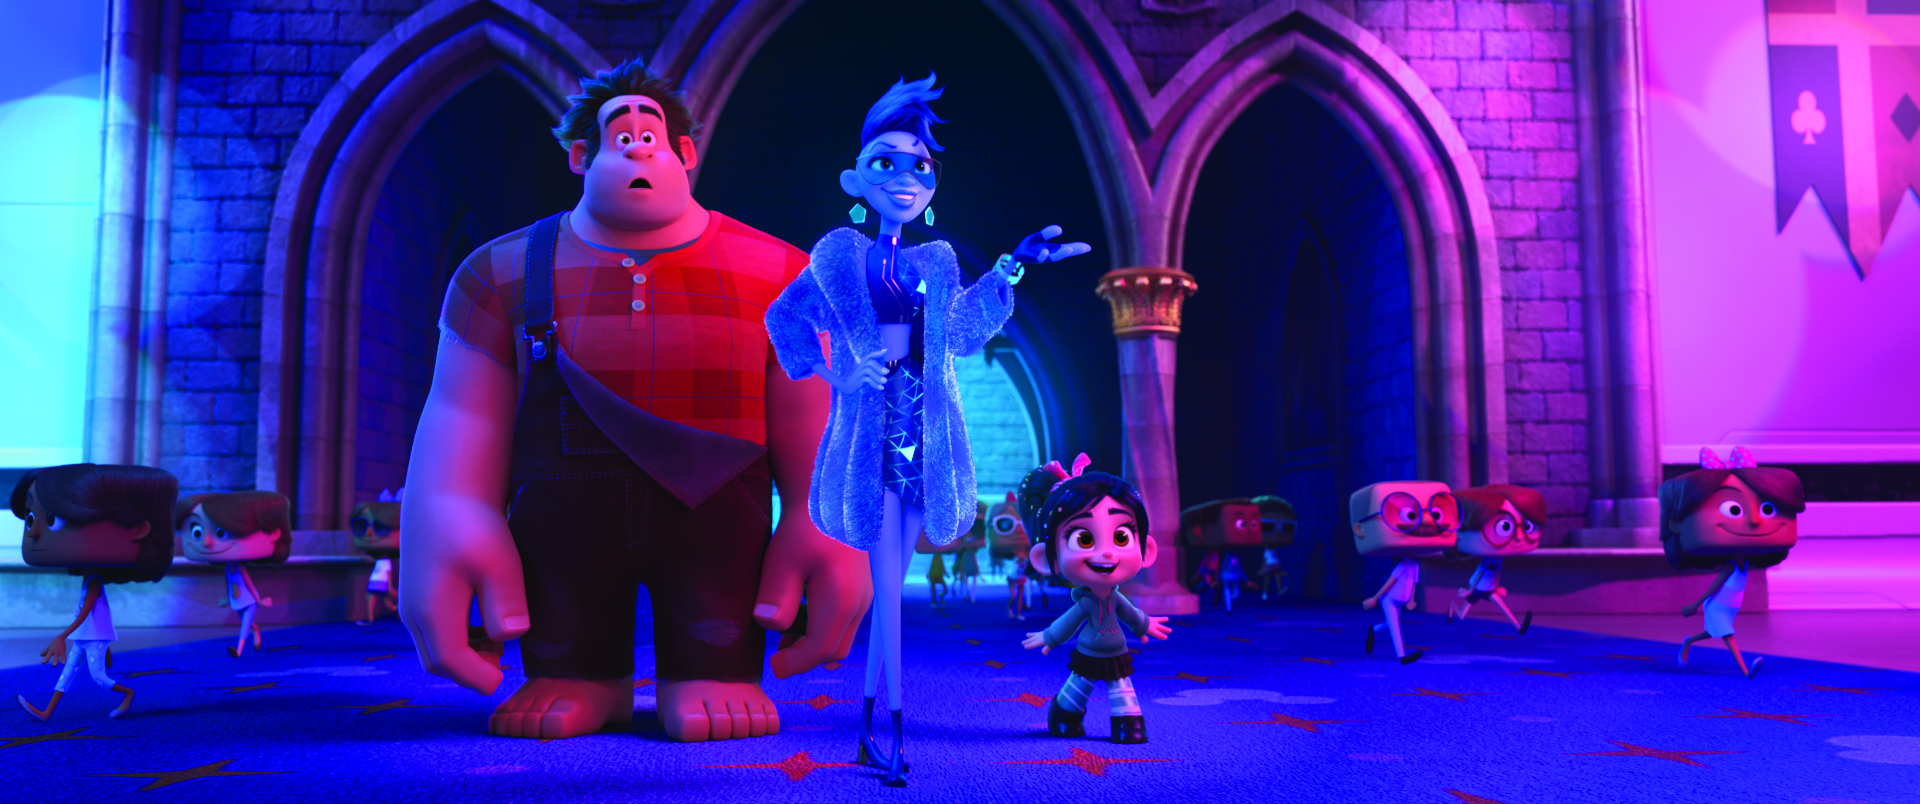 WRECK IT RALPH 2.  In 'Ralph Breaks the Internet: Wreck It Ralph 2,' game bad guy Ralph and his fellow misfit Vanellope von Schweetz venture into the expansive and thrilling world of the Internet  Photo from Disney